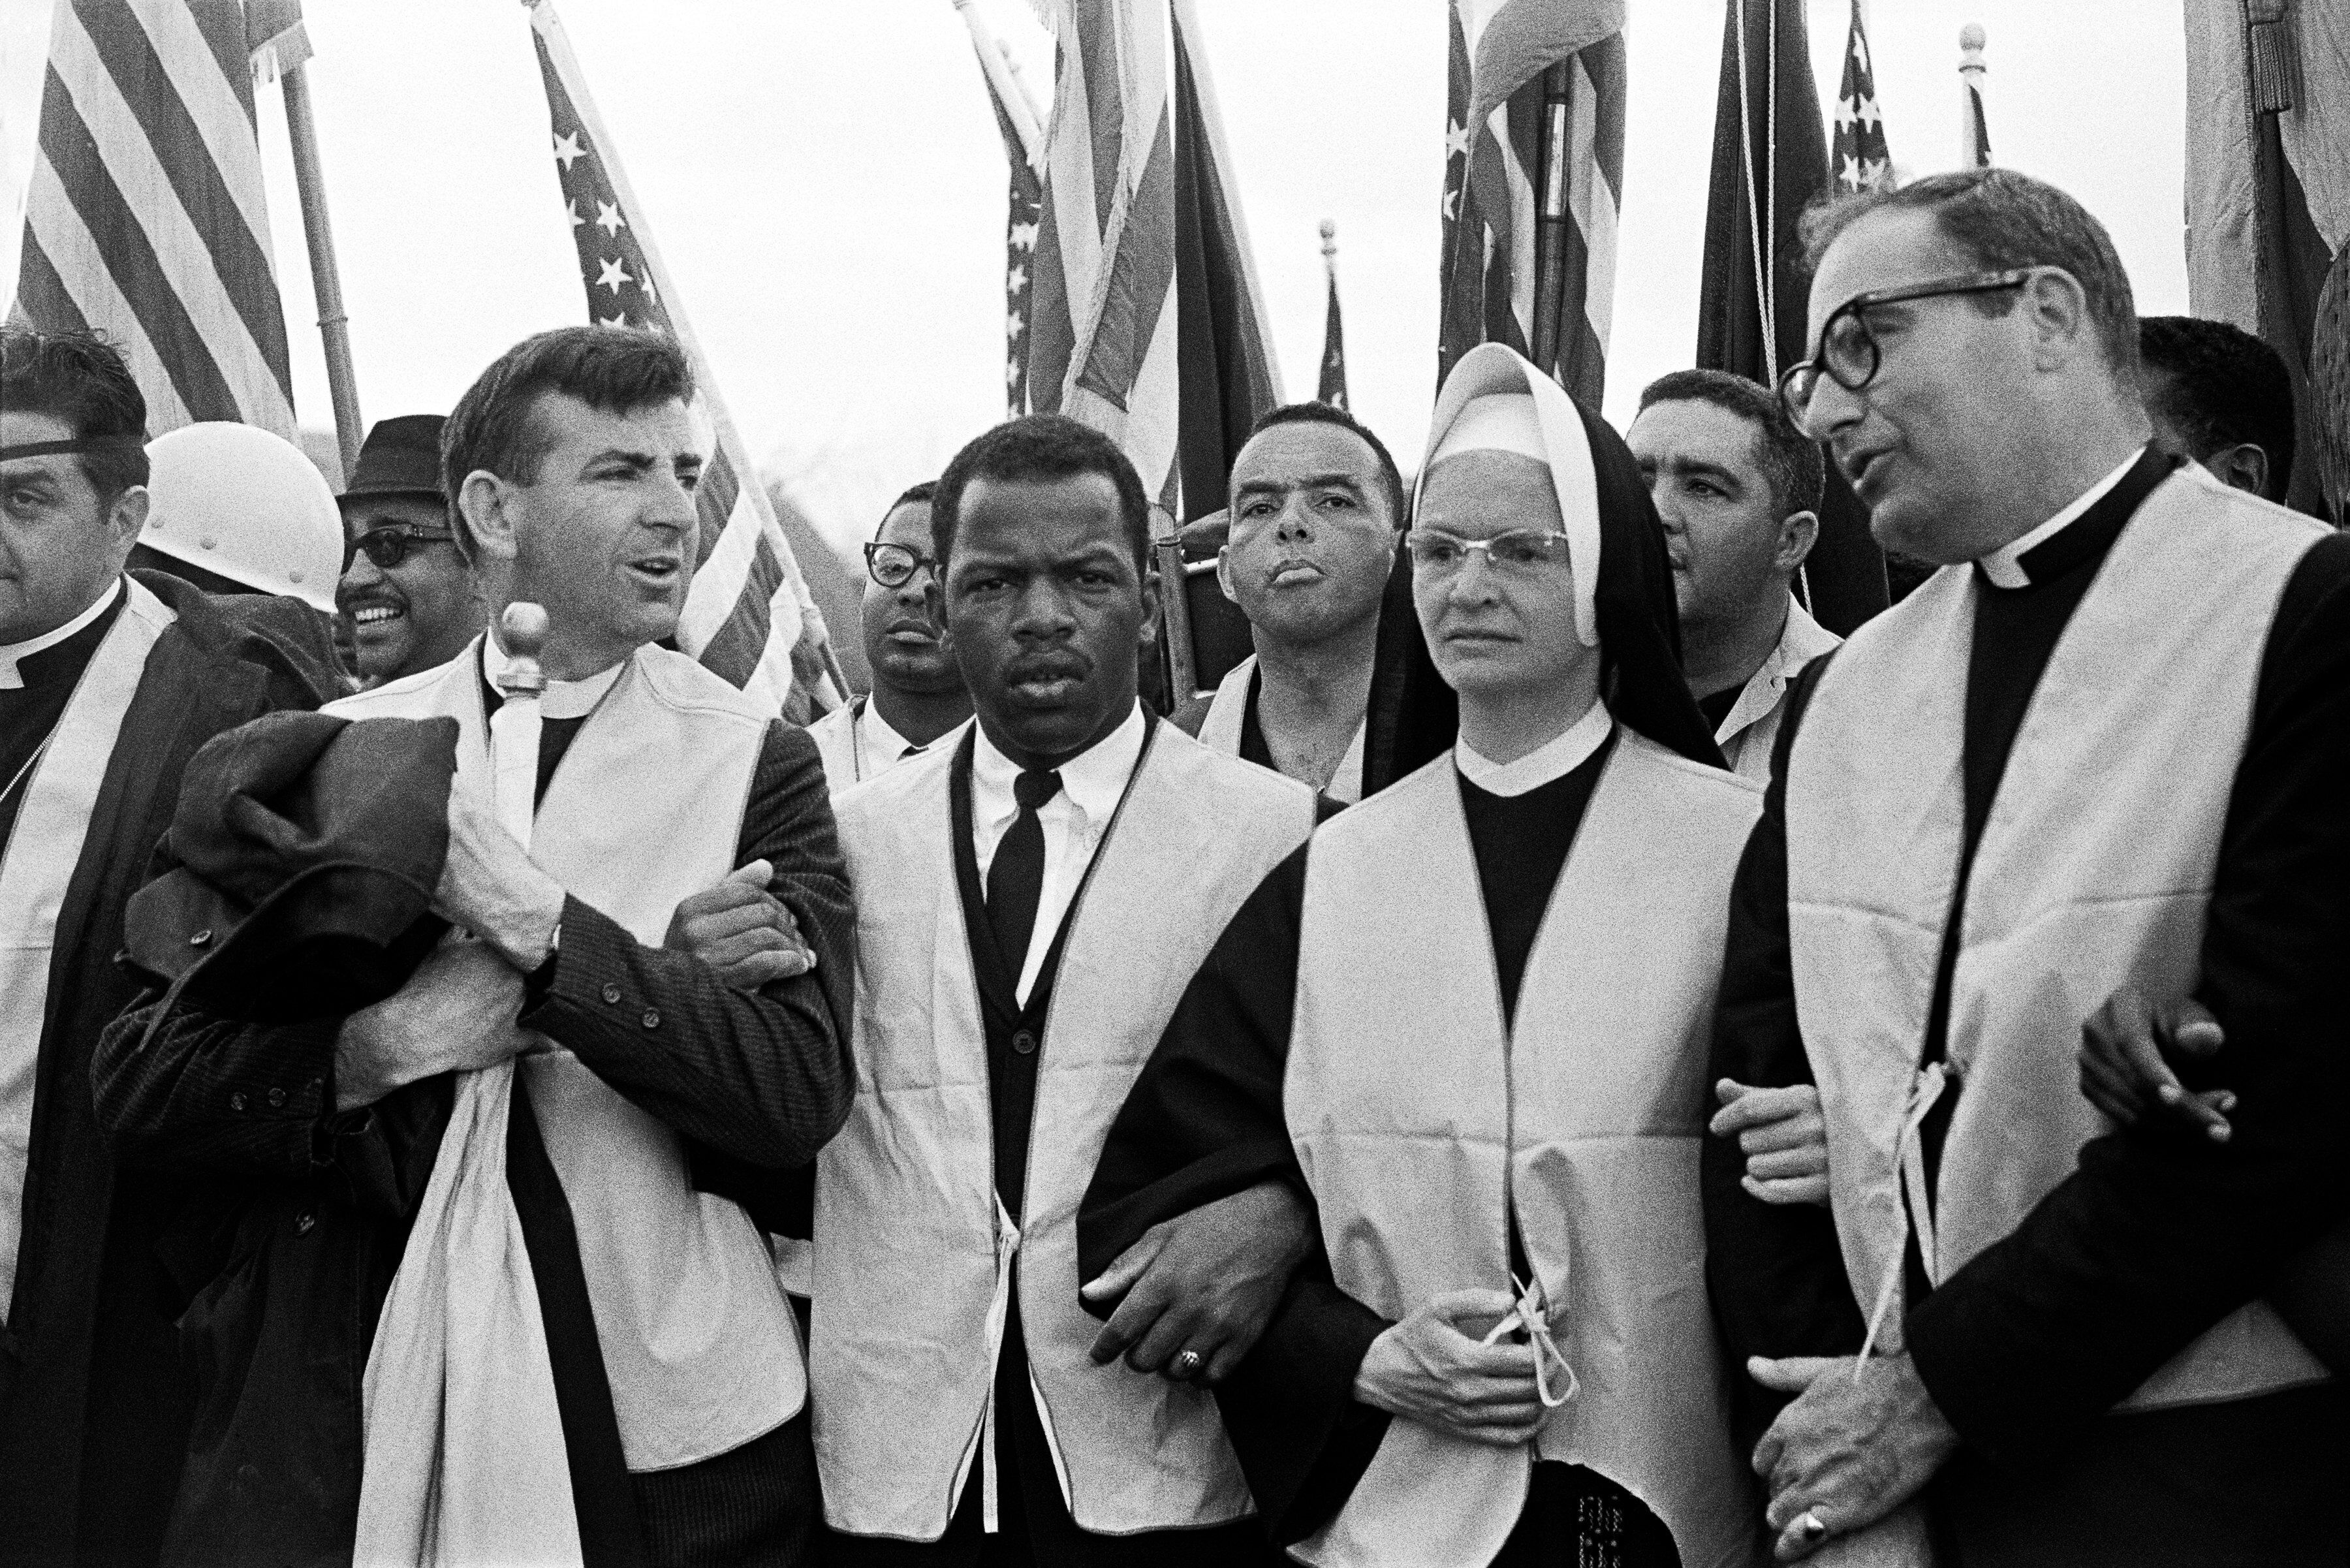 At the head of the march from Selma to Montgomery on March 25, 1965, nuns, priests and civil rights leaders: The Rev. Arthur Matott (from left), John Lewis (head of the Student Nonviolent Coordinating Committee), Andrew Young, Sister Mary Leoline and Theodore Gill.